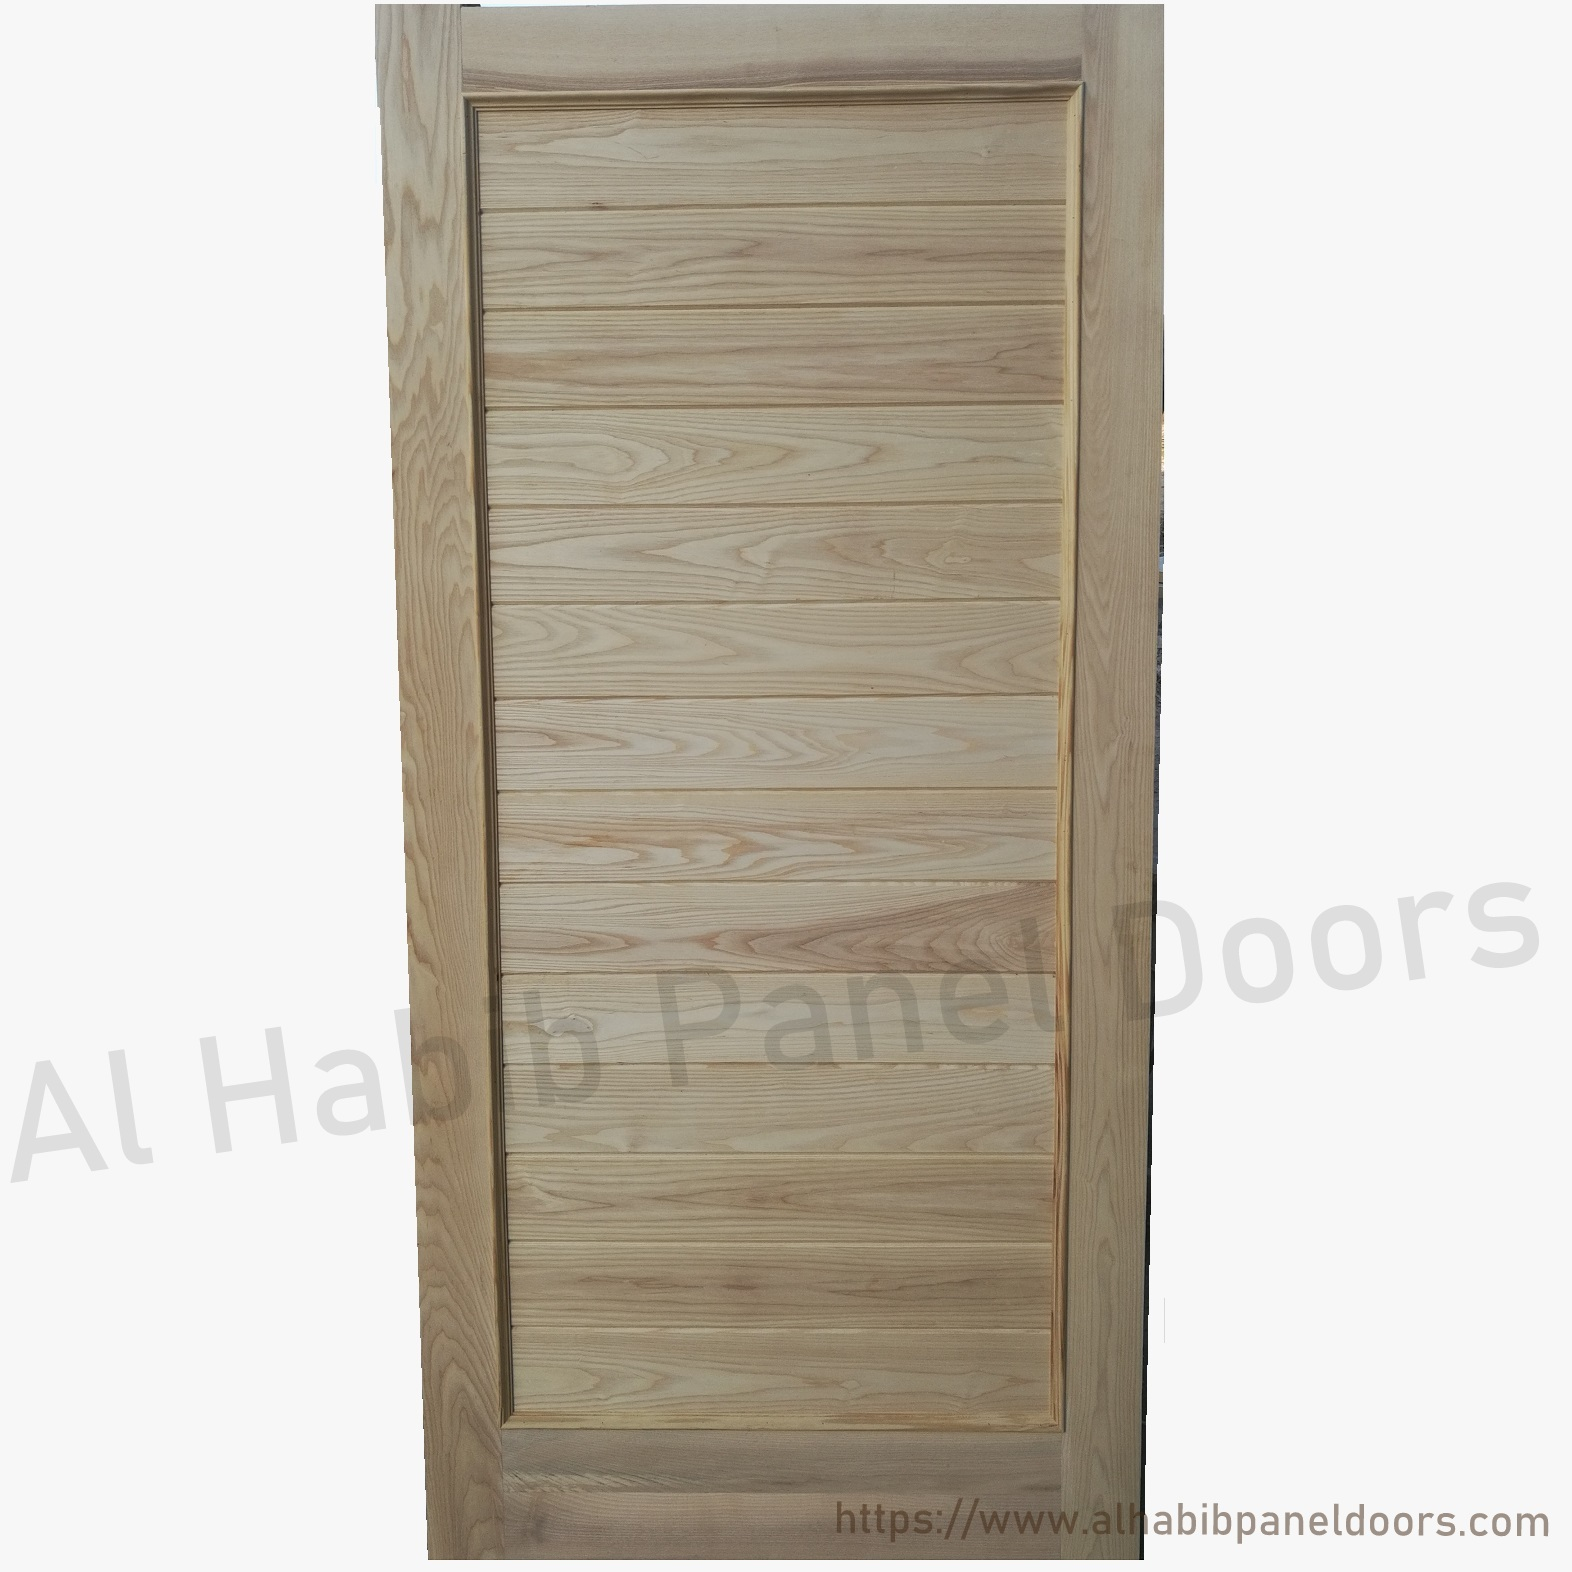 Ash wood door design hpd423 solid wood doors al habib for Wooden door ideas